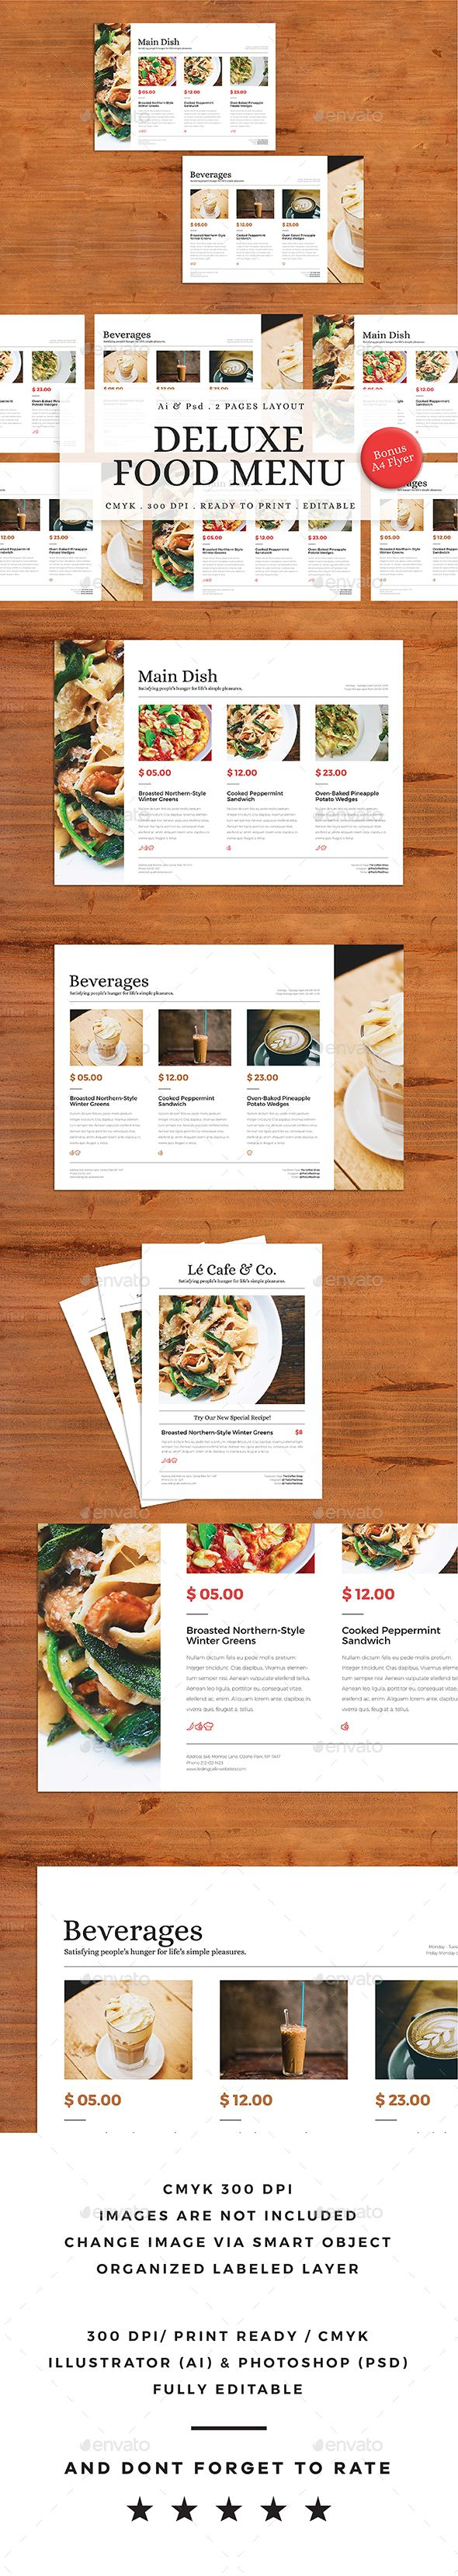 Menu Design Ideas indian restaurant menu flyer ads and postcard ideas graphic design Deluxe Food Menu A4 Flyer Menu Food Menus Print Templates Download